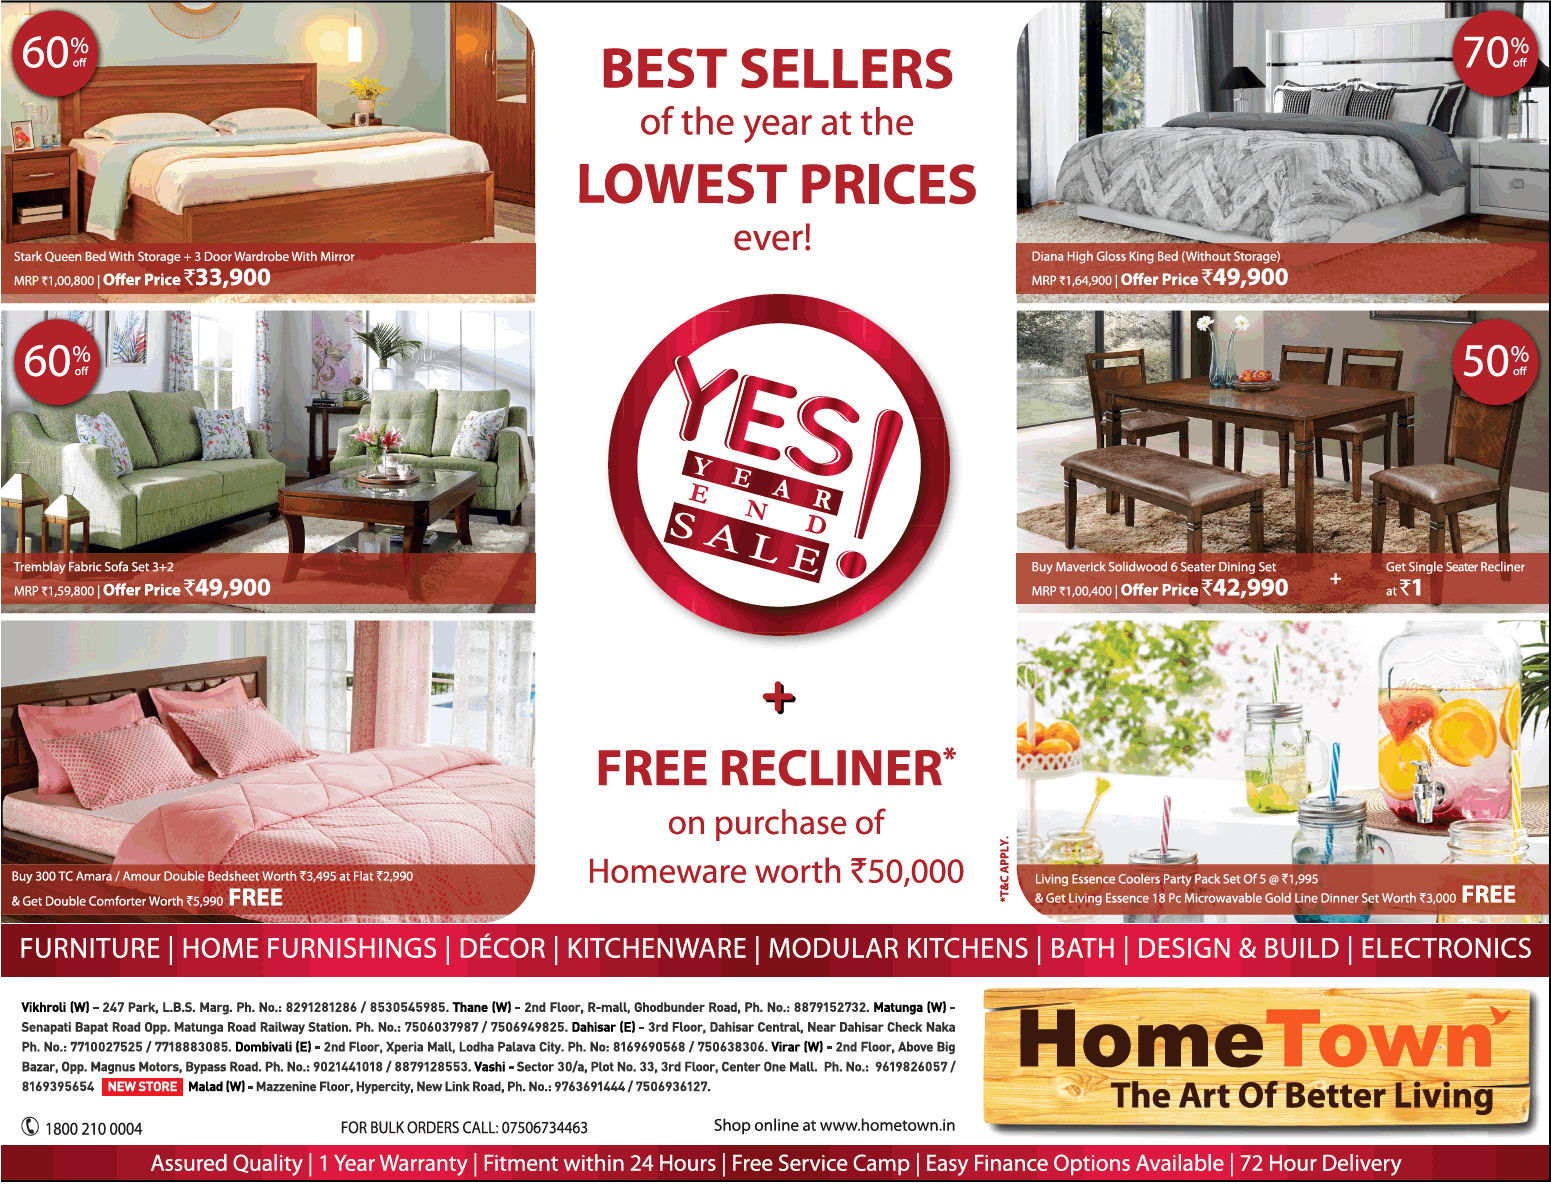 Hometown furniture yes year end sale ad times